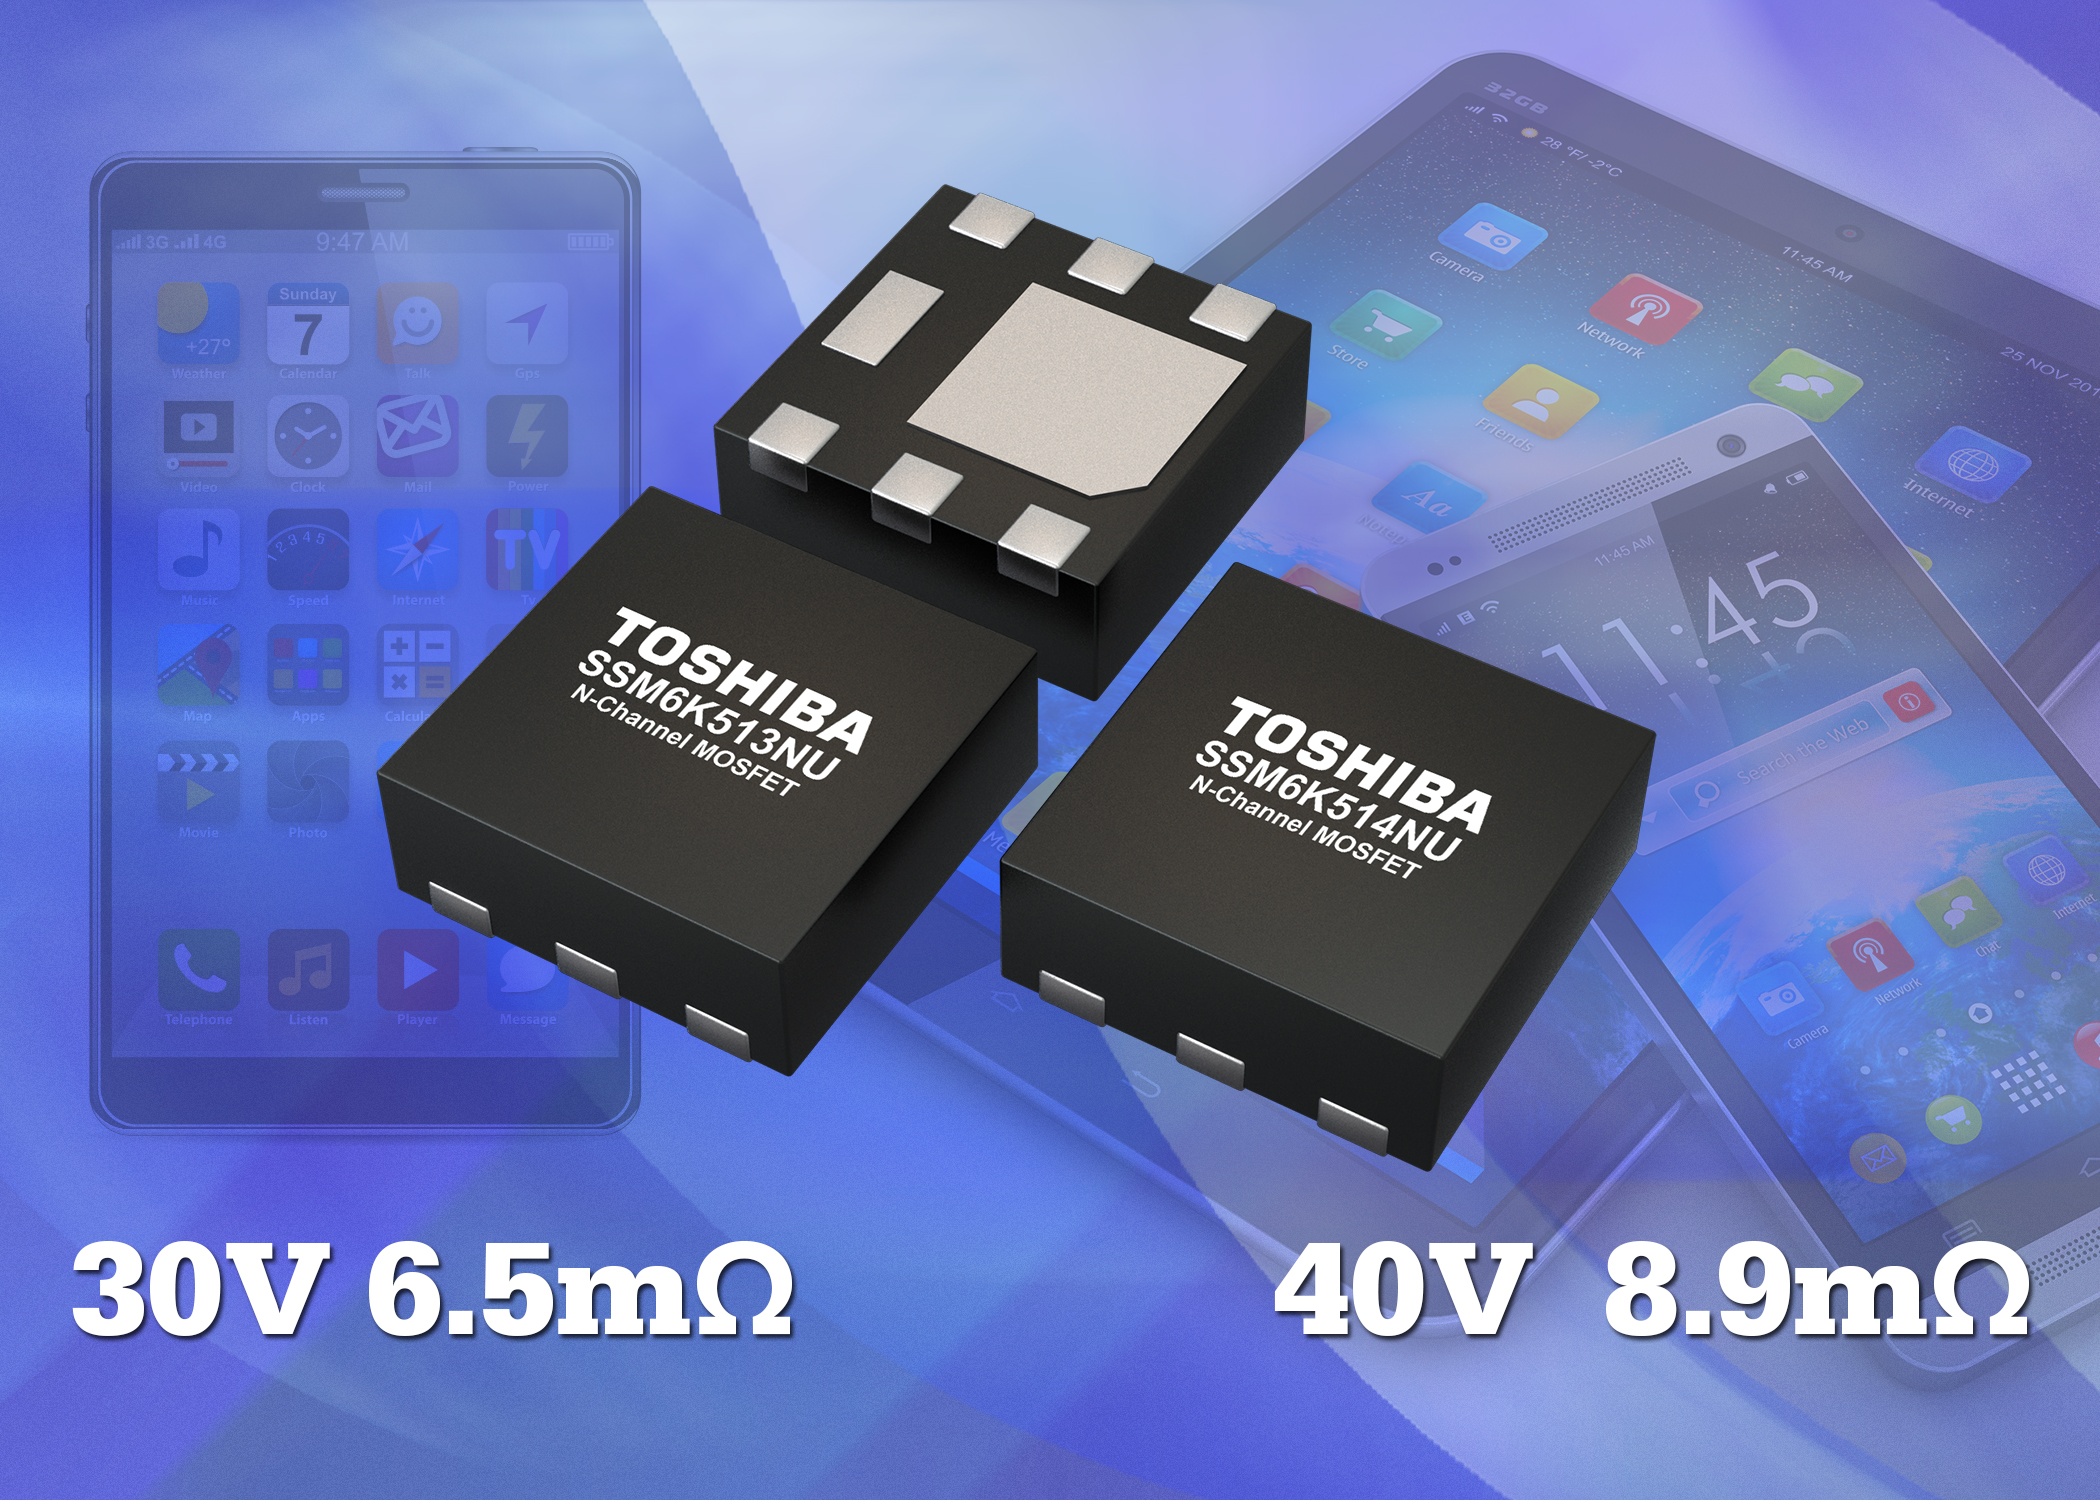 N-channel MOSFETs reduce heat dissipation by 40%